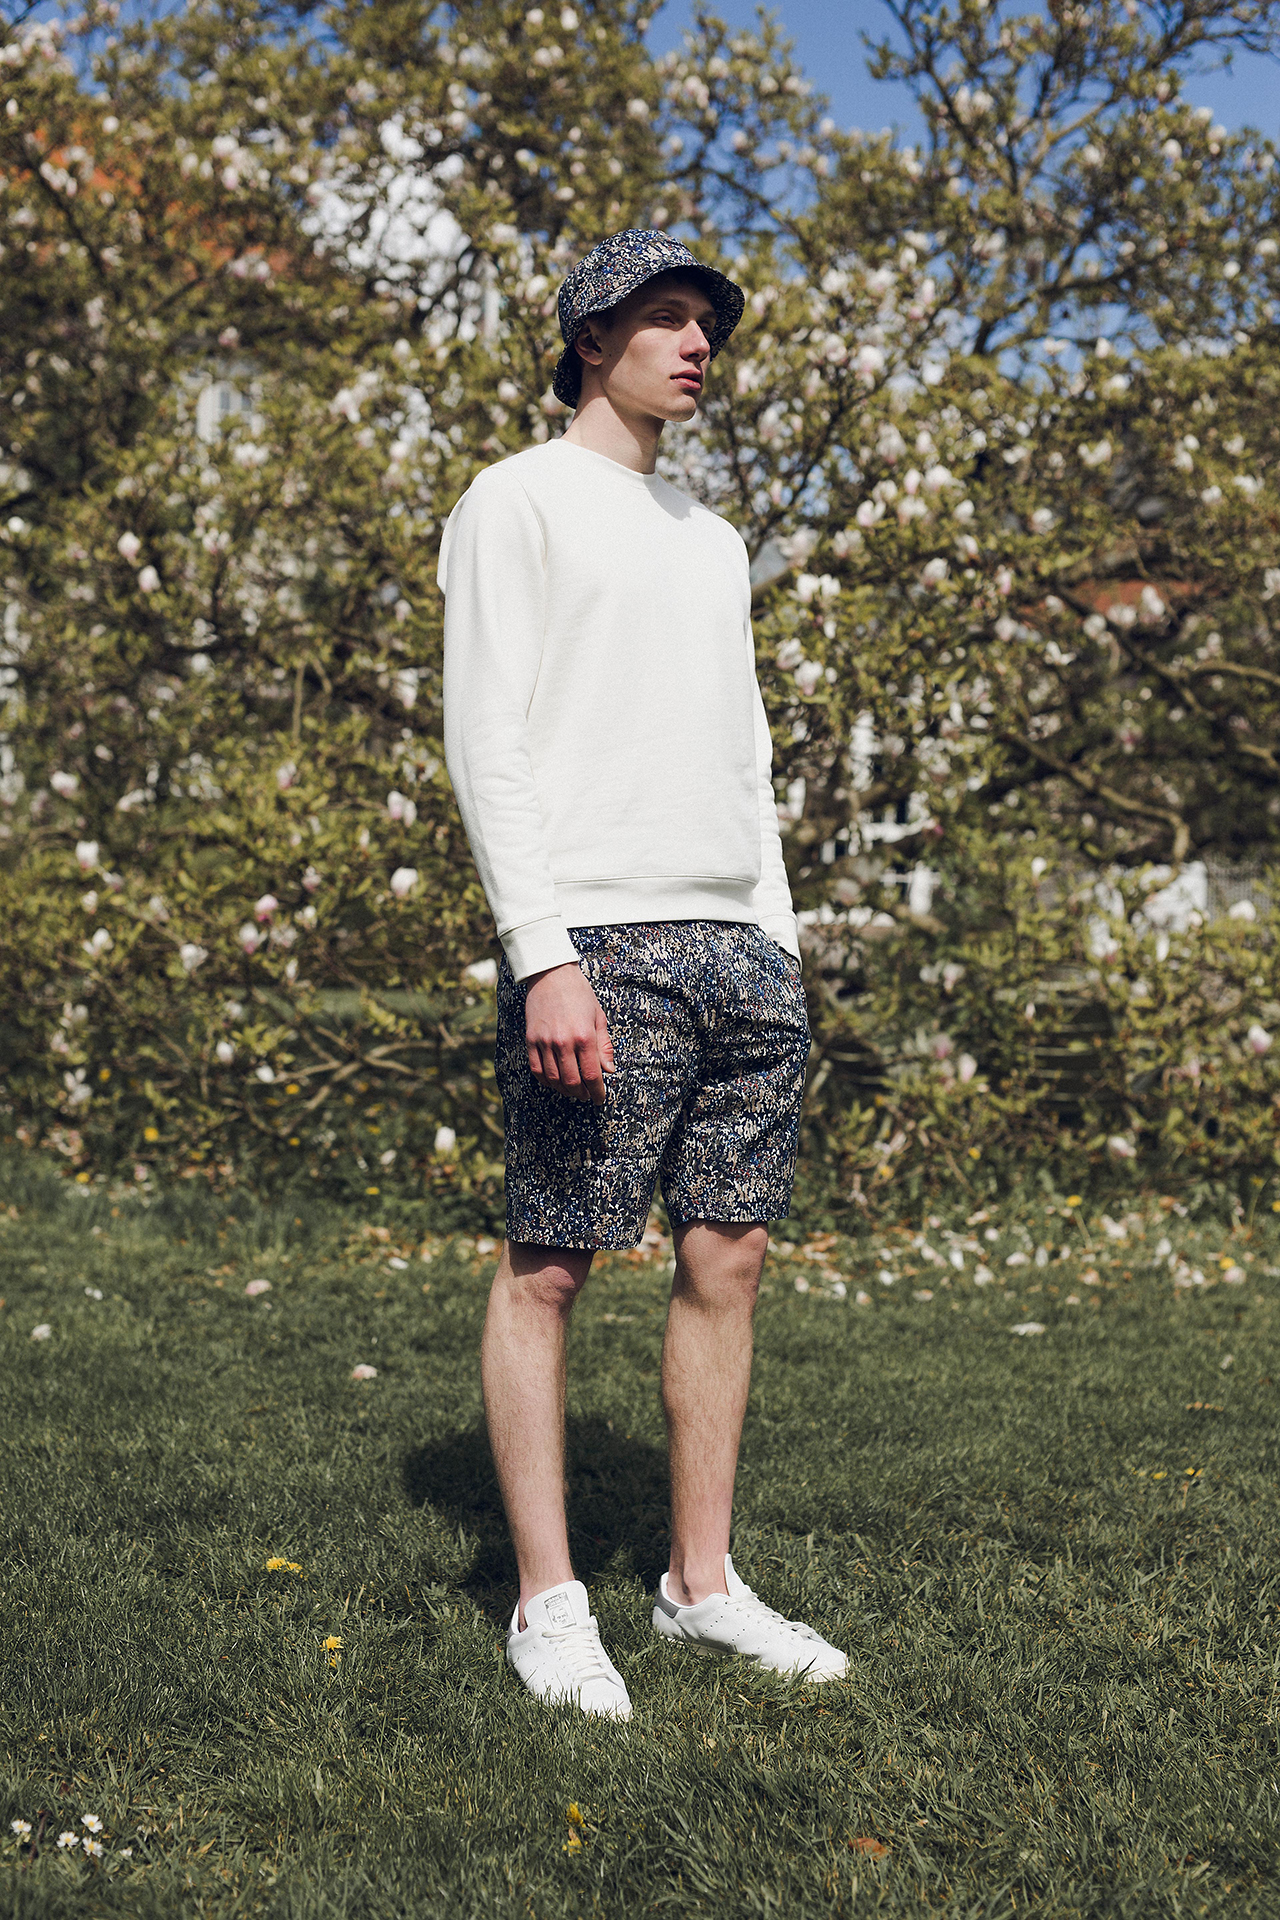 Norse Projects store liberty print floral 2019 summer jacket shorts cap bucket hat shirt release details information supreme nike buy cop purchase copenhagen